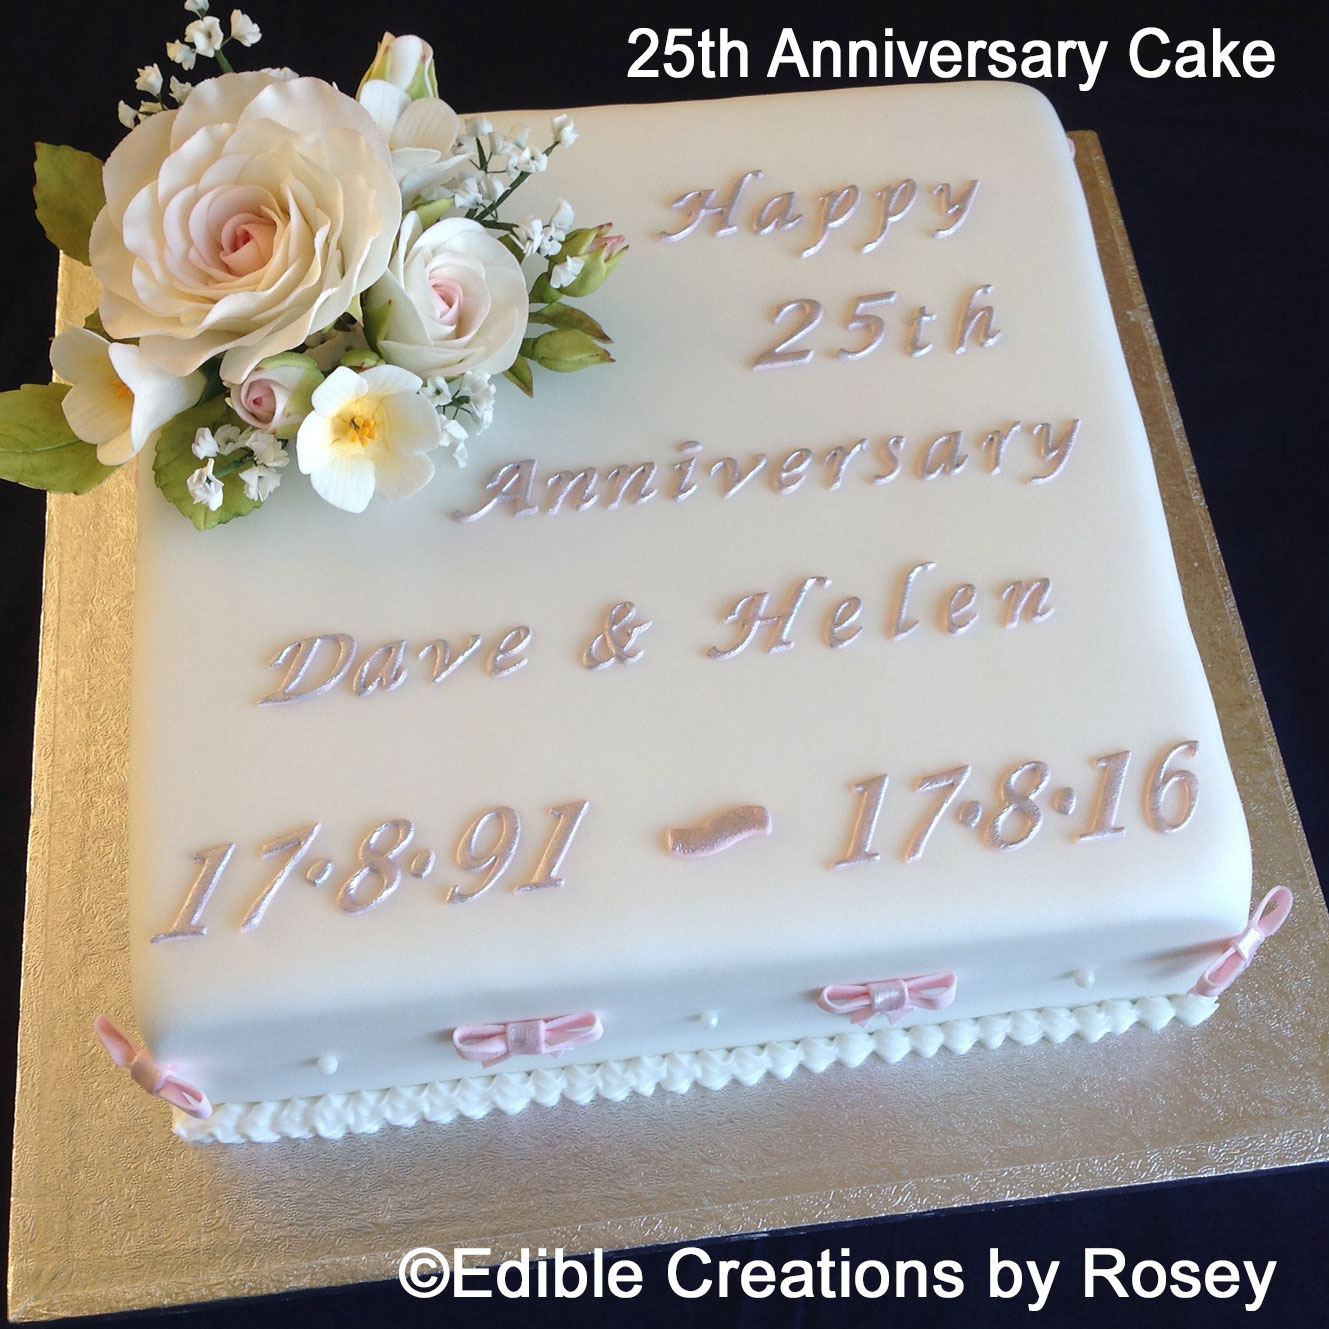 Anniversary Day Cake Images : Reviews on Edible Creations by Rosey